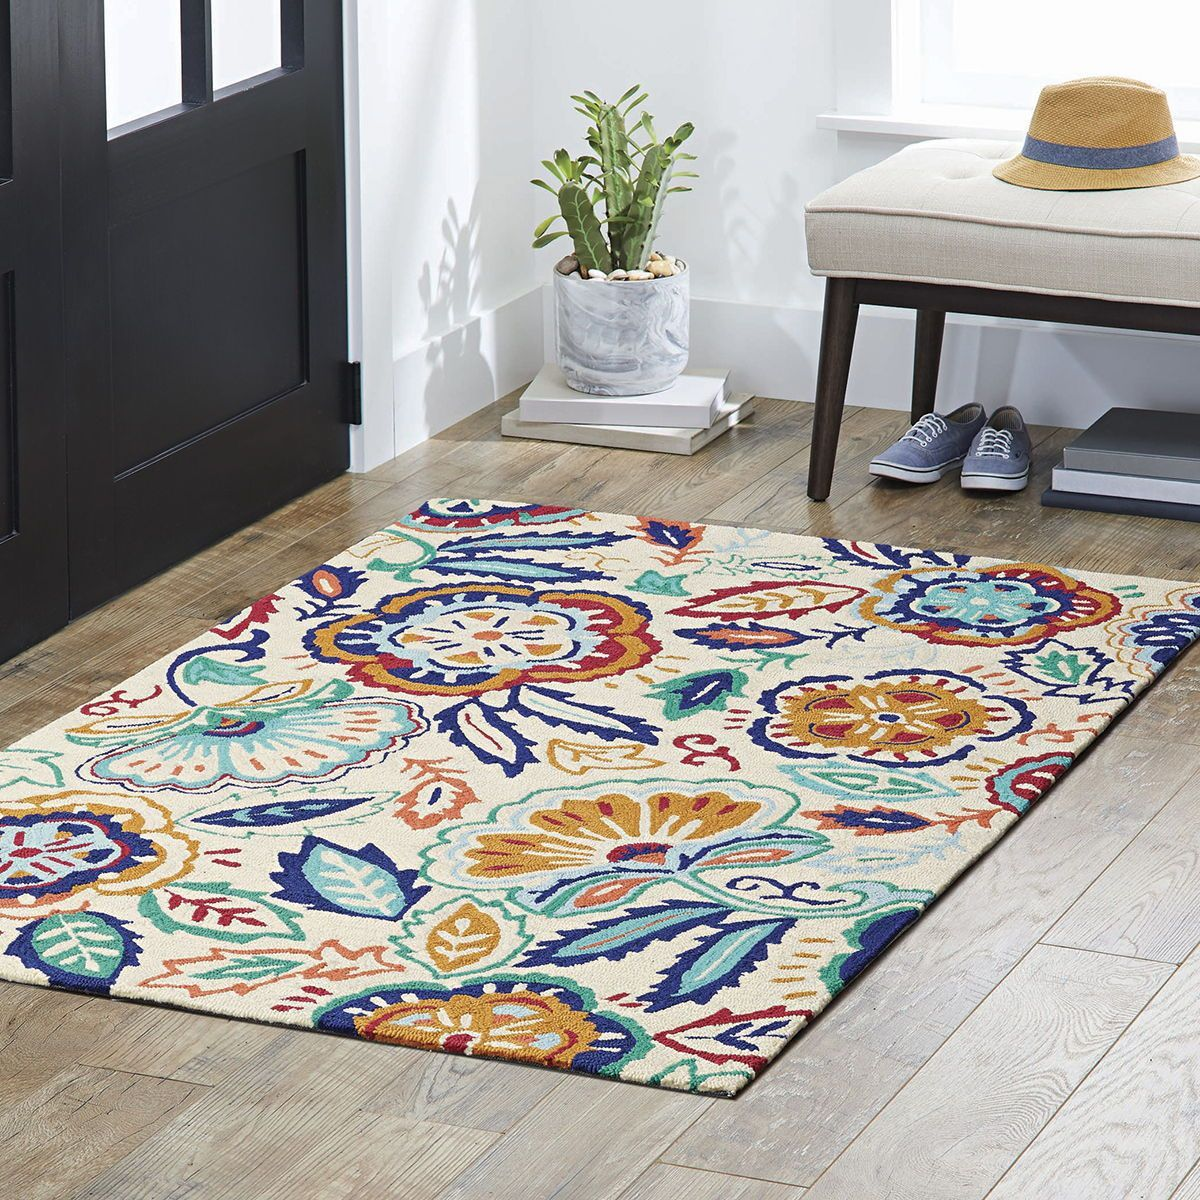 Pin By Deidra Butler On Home Area Room Rugs Living Room Area Rugs Rugs In Living Room Large area rugs for sale